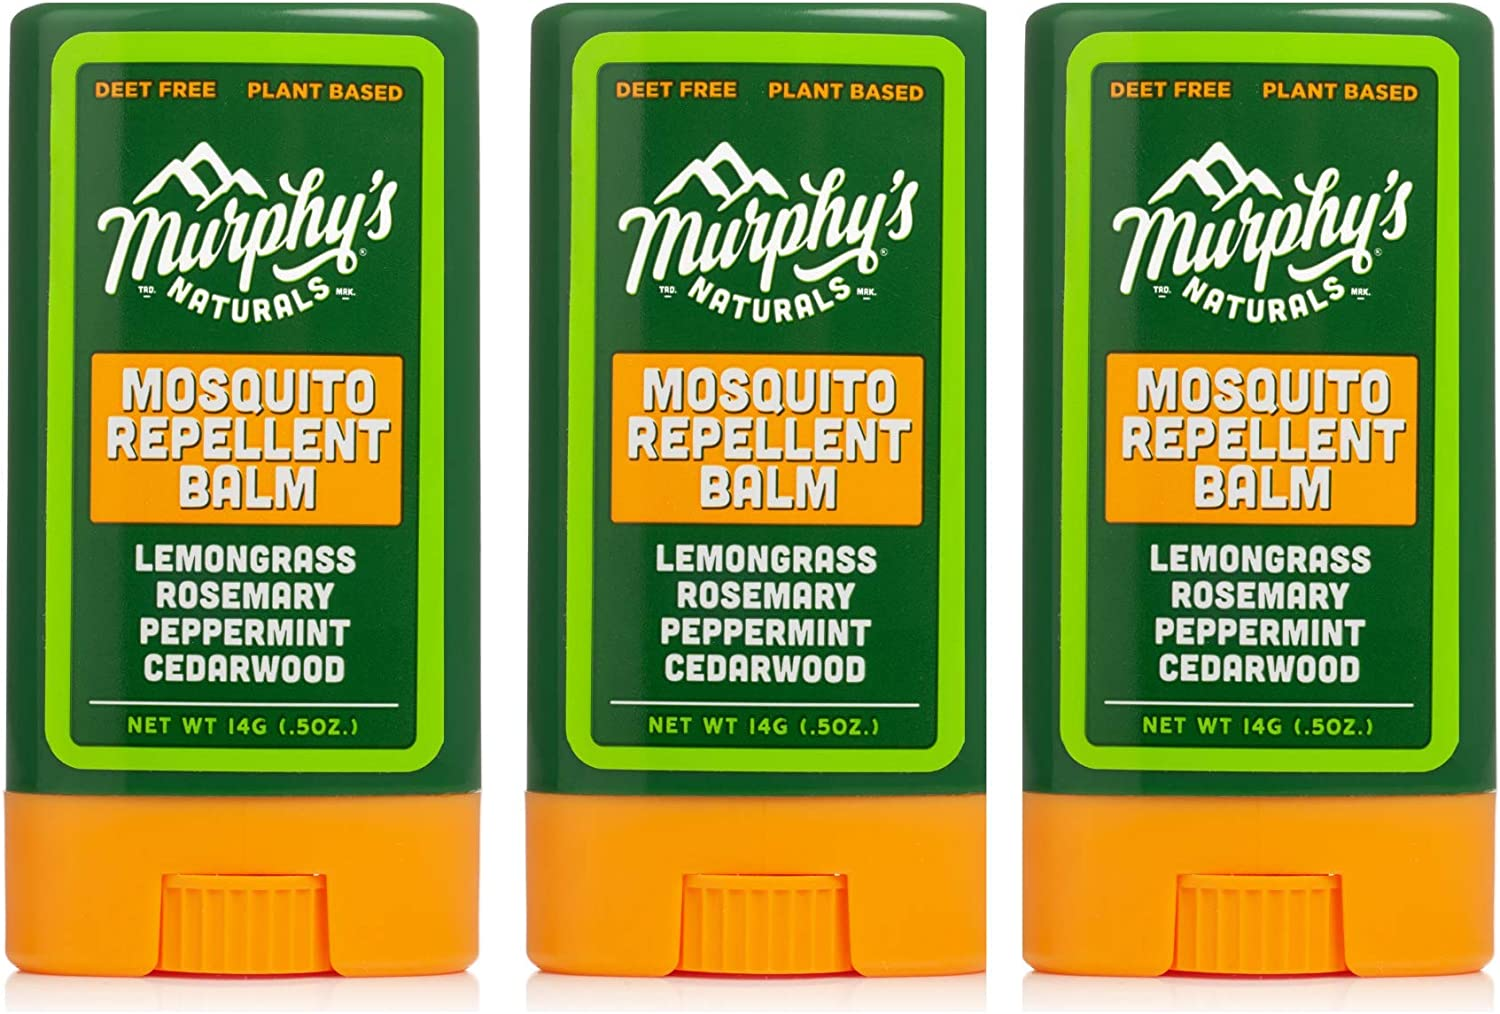 Murphy's Naturals Mosquito Repellent Balm Stick | Plant Based, Natural Ingredients | DEET Free | Travel/Pocket Size | 0.5 oz | 3 Pack